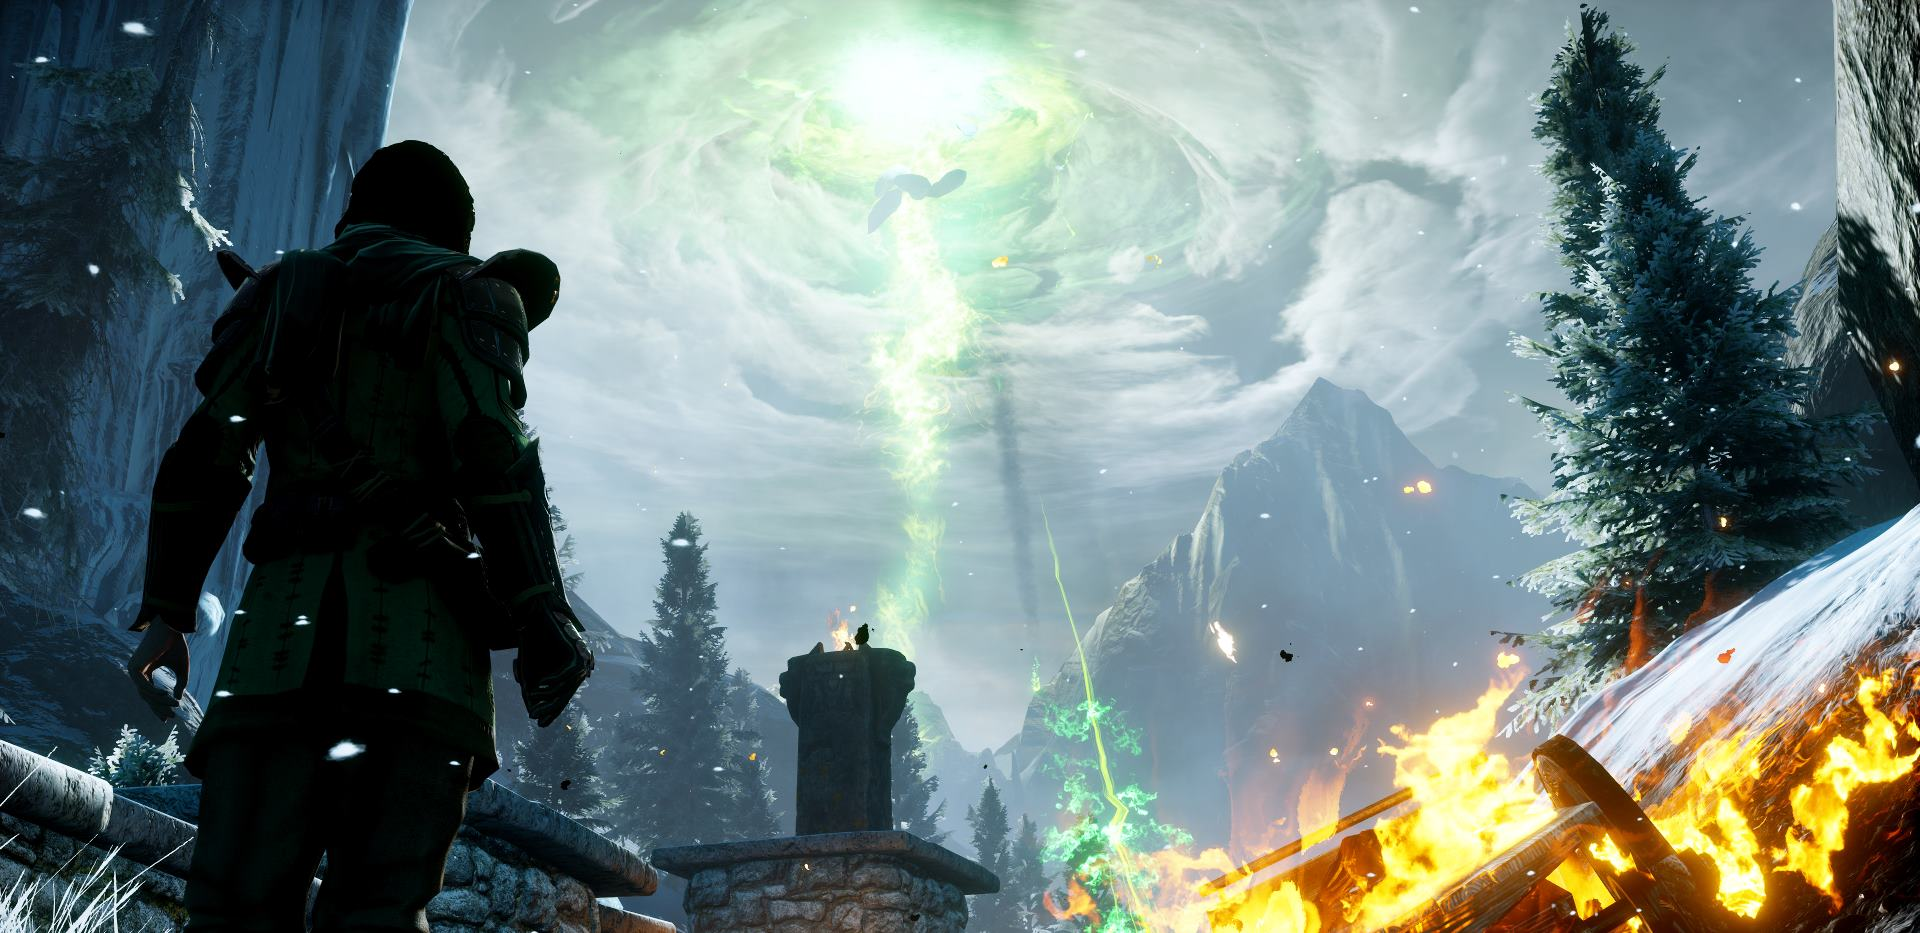 Polygon's Games of the Year 2014 #1: Dragon Age: Inquisition